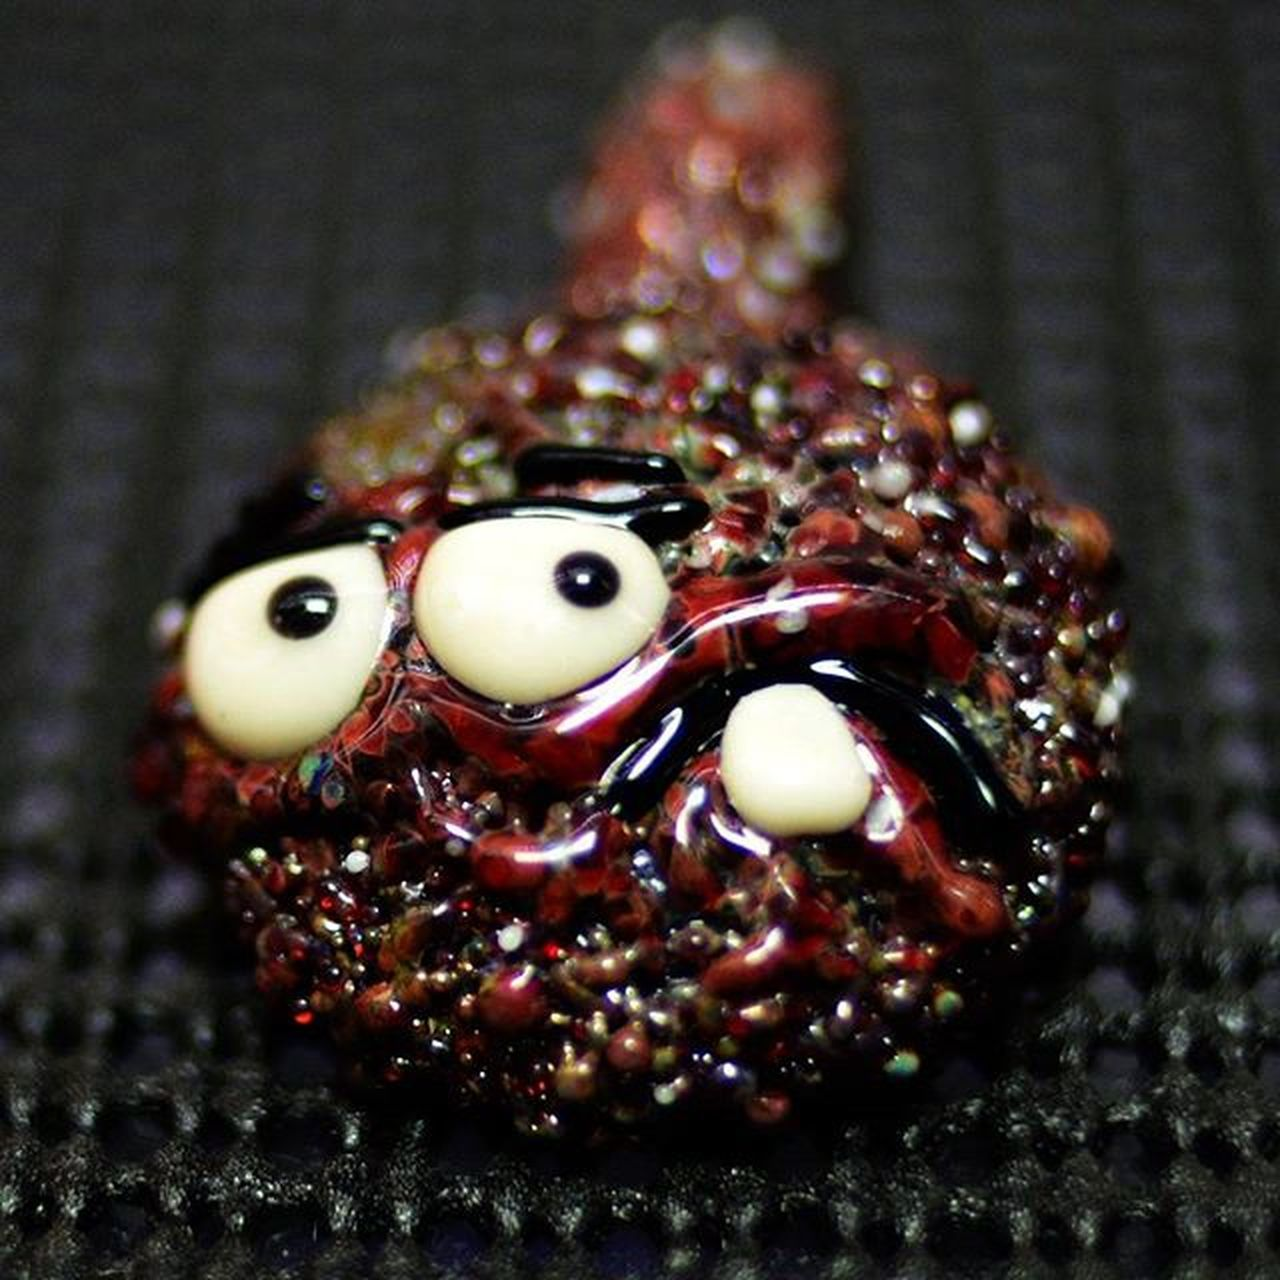 @ibakeEnglewood Denverco Meatwad AquateamHungerForce Pendi Glasspendant Glassart Glasswork Art Meatballs Sucka Cannabis Glassblowing Glass DOPE Sick Athf Stonerjewelry Cannapages 420 710 Dab Dablife